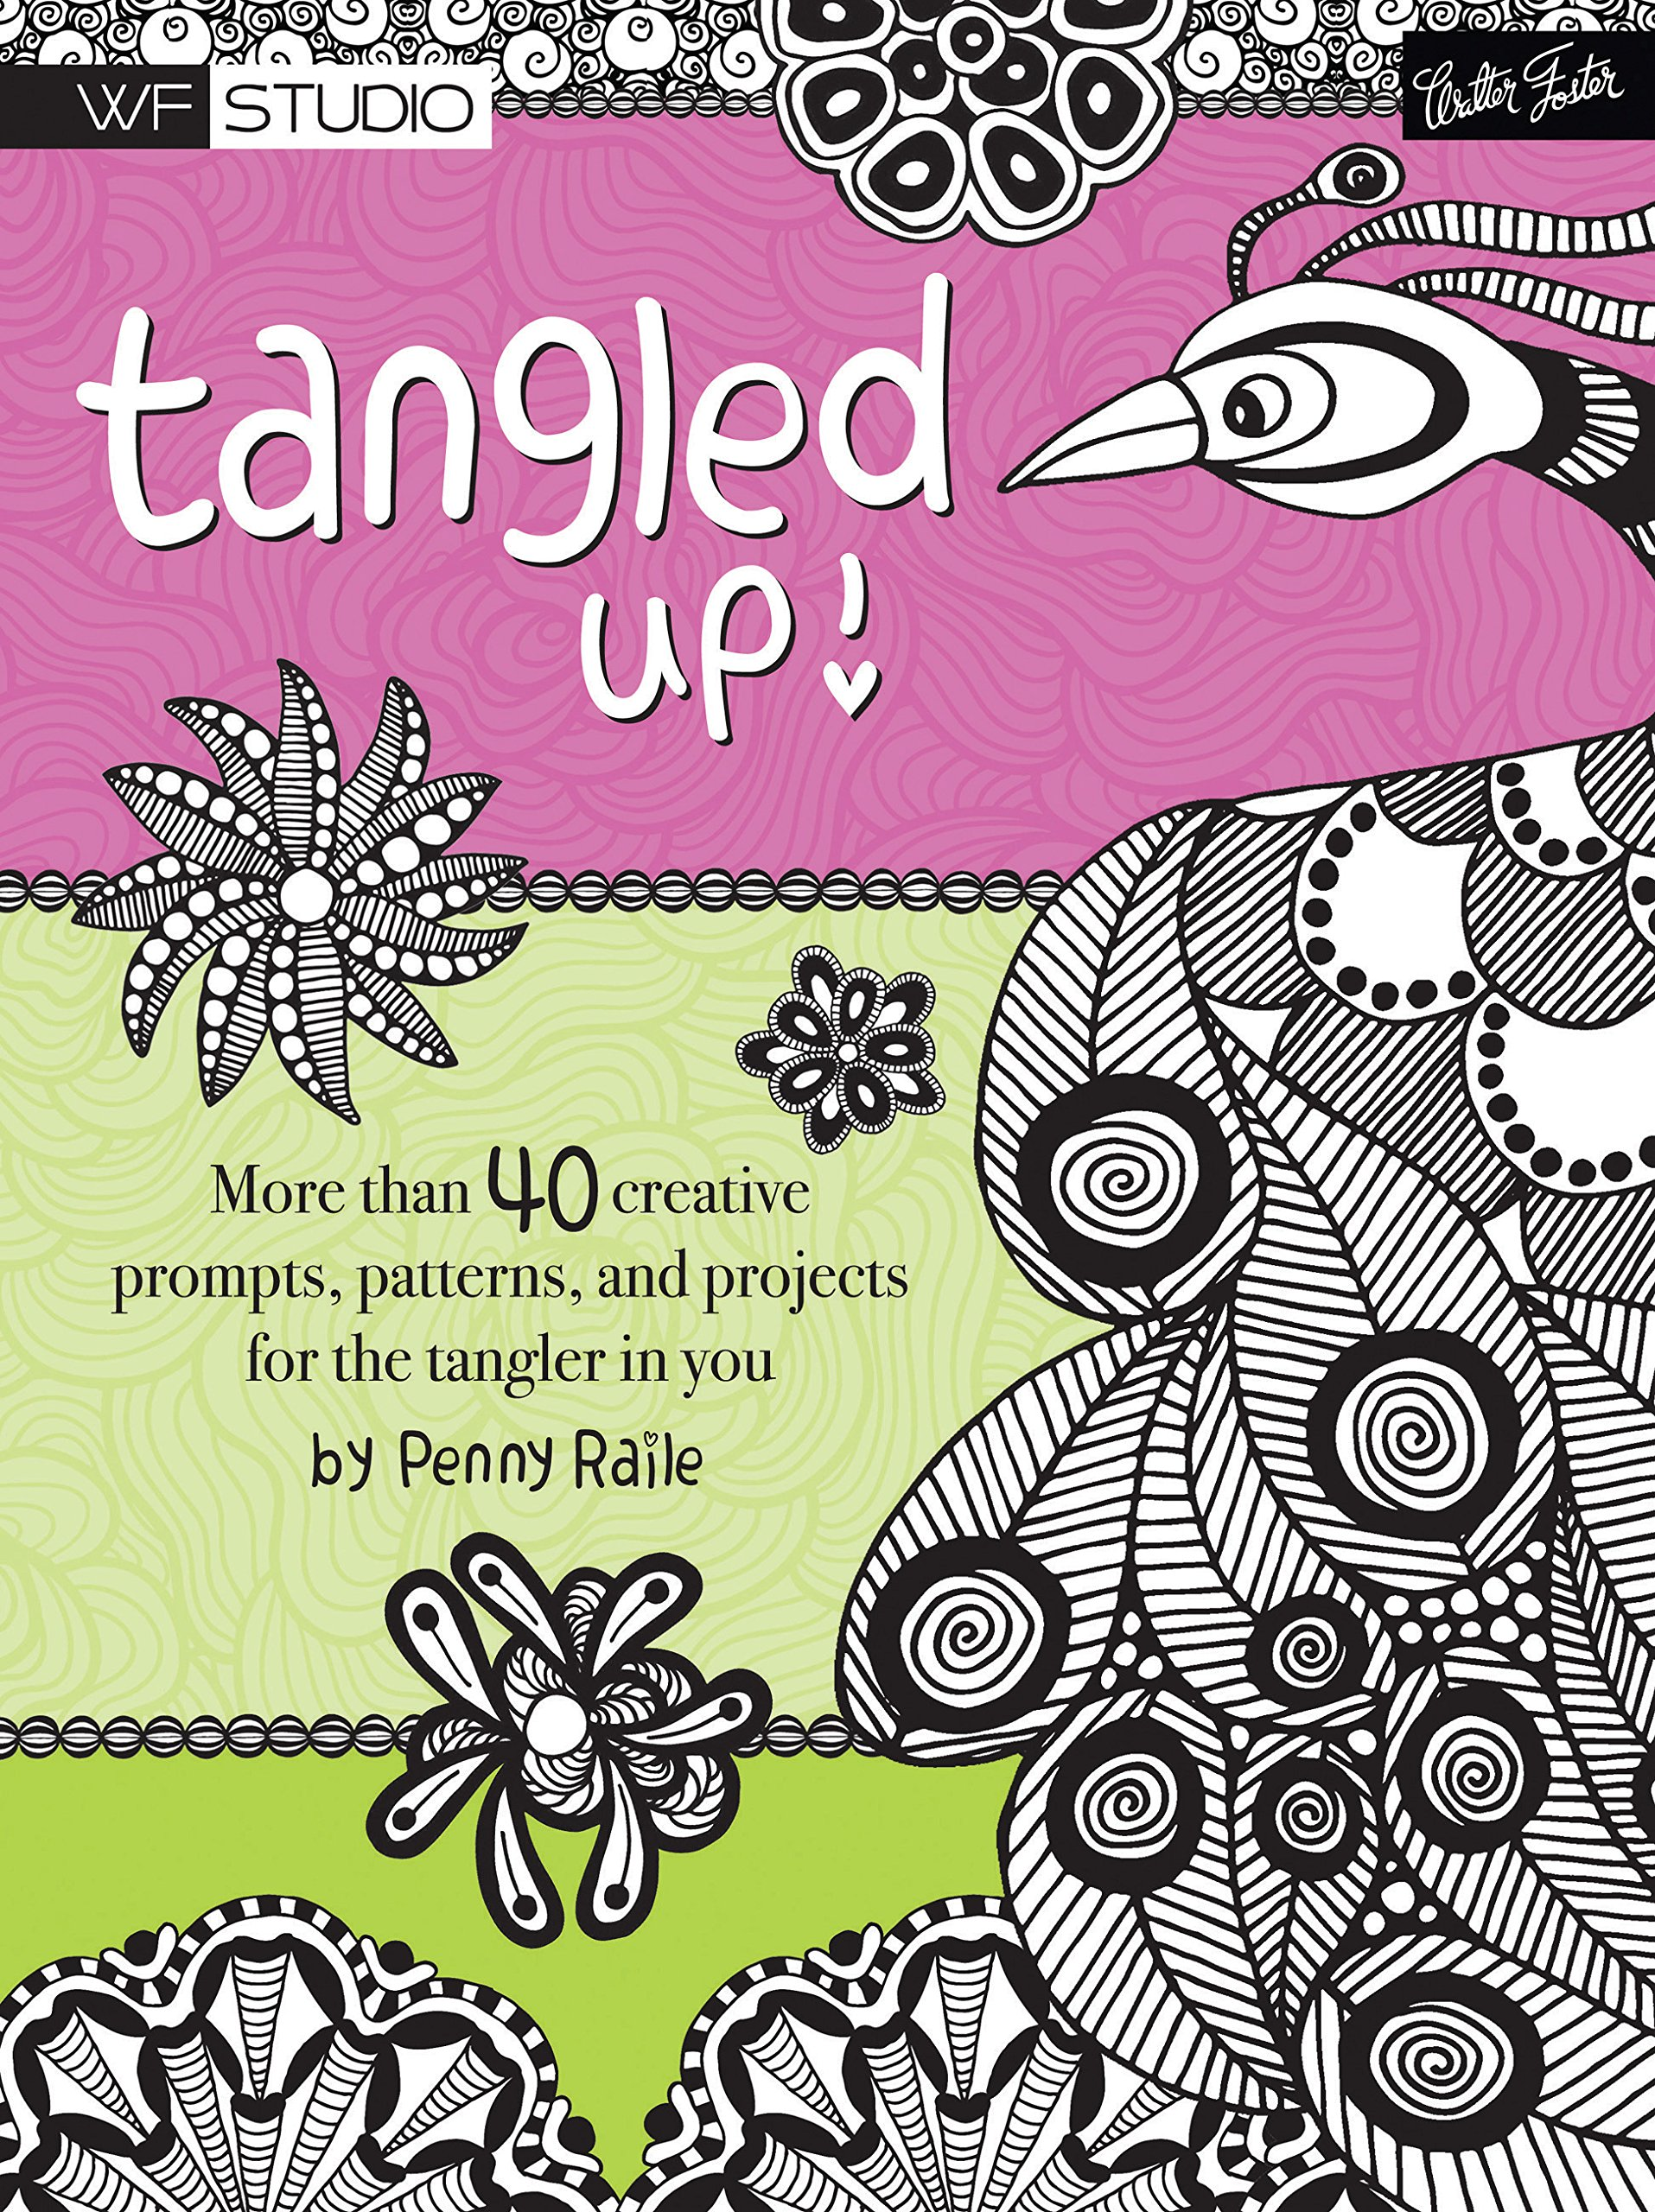 Read Online Tangled Up!: More than 40 creative prompts, patterns, and projects for the tangler in you (Walter Foster Studio) PDF